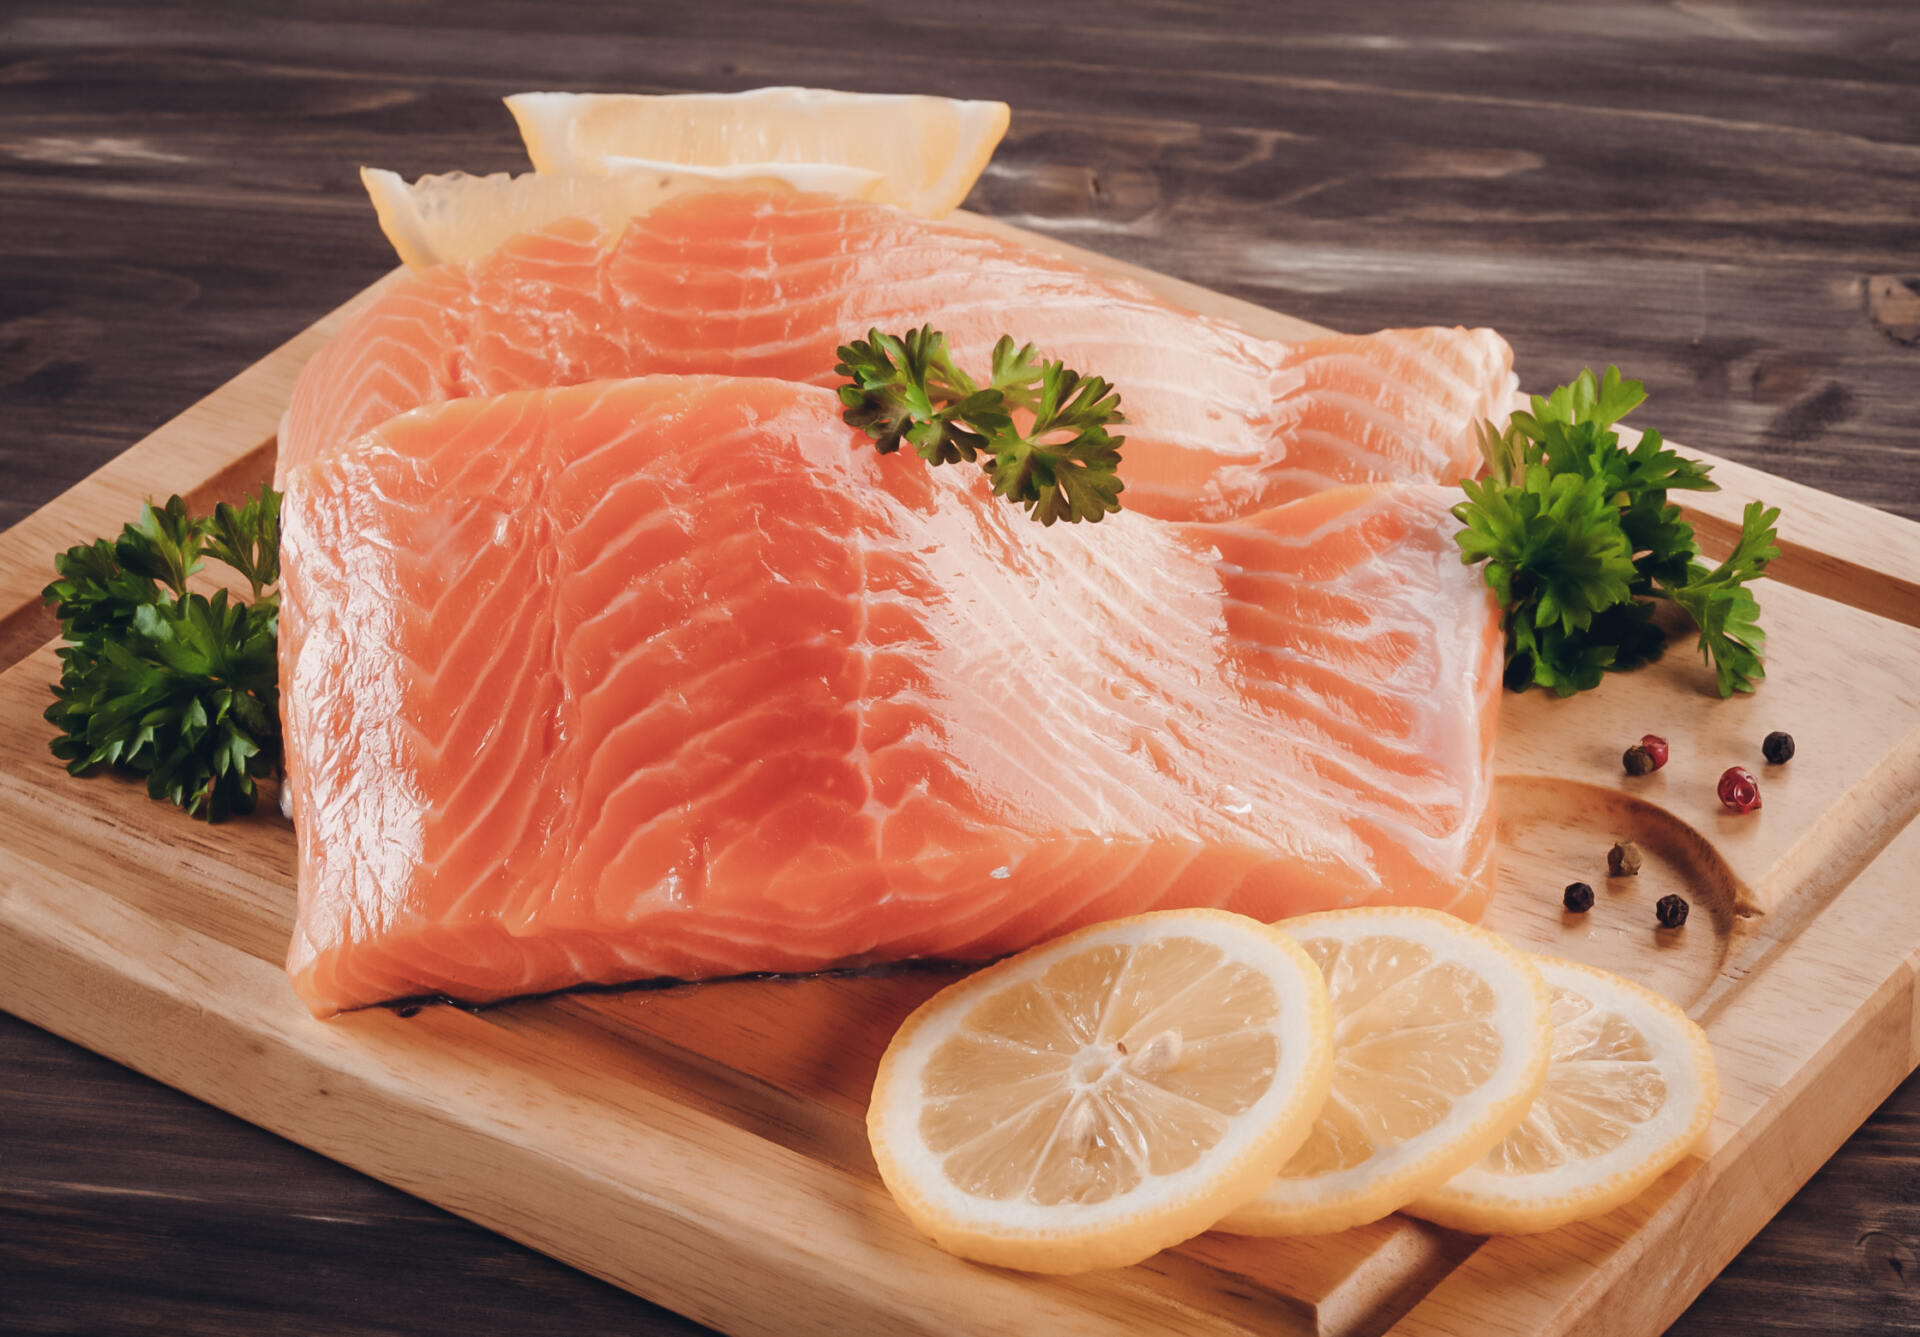 Salmon (sickle cell crisis)